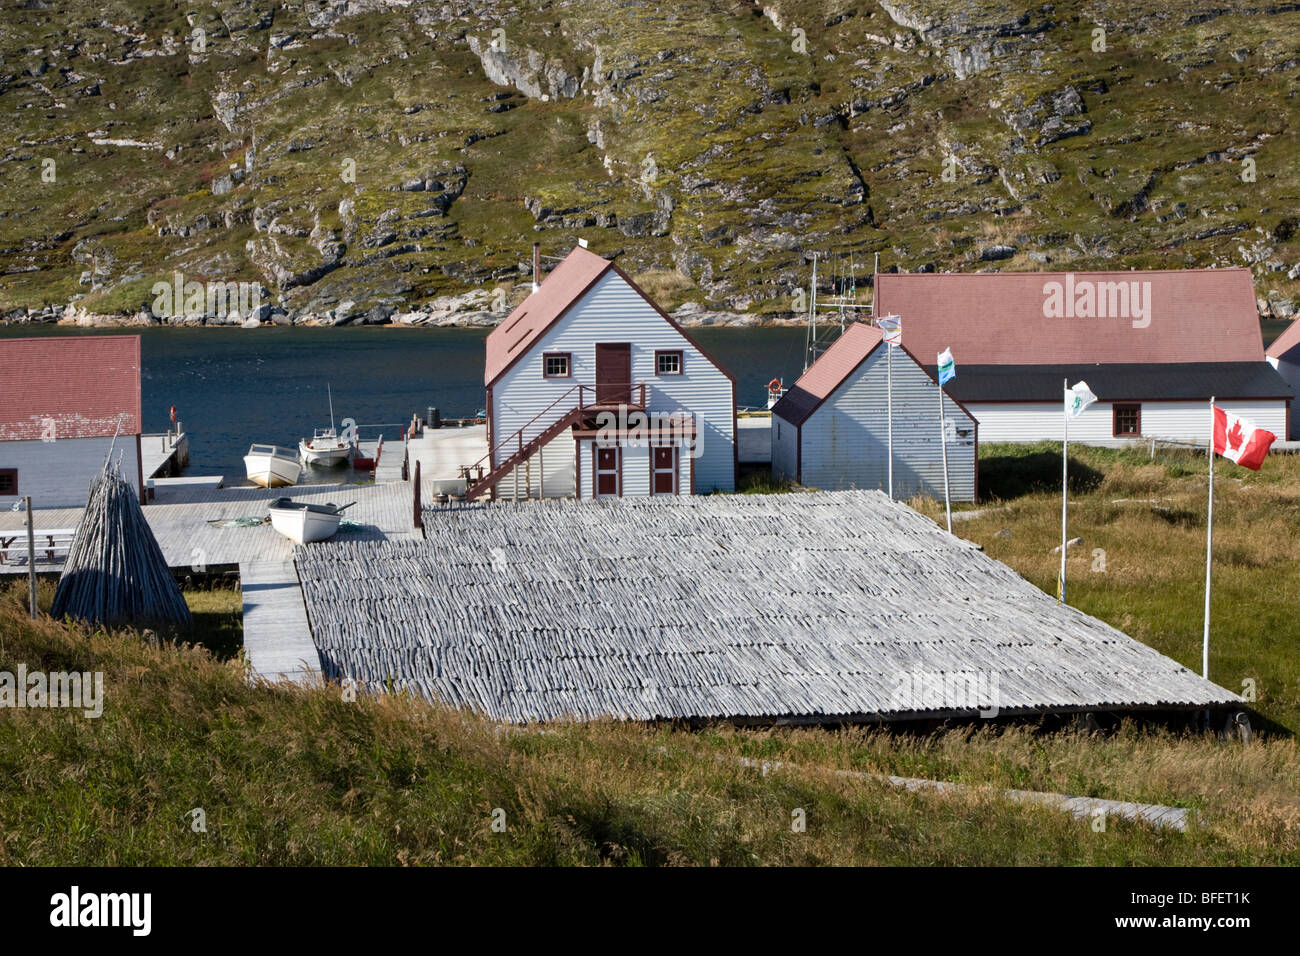 Rebuilt fish drying flake and restored buildings, Battle Harbour, Labrador, Canada - Stock Image